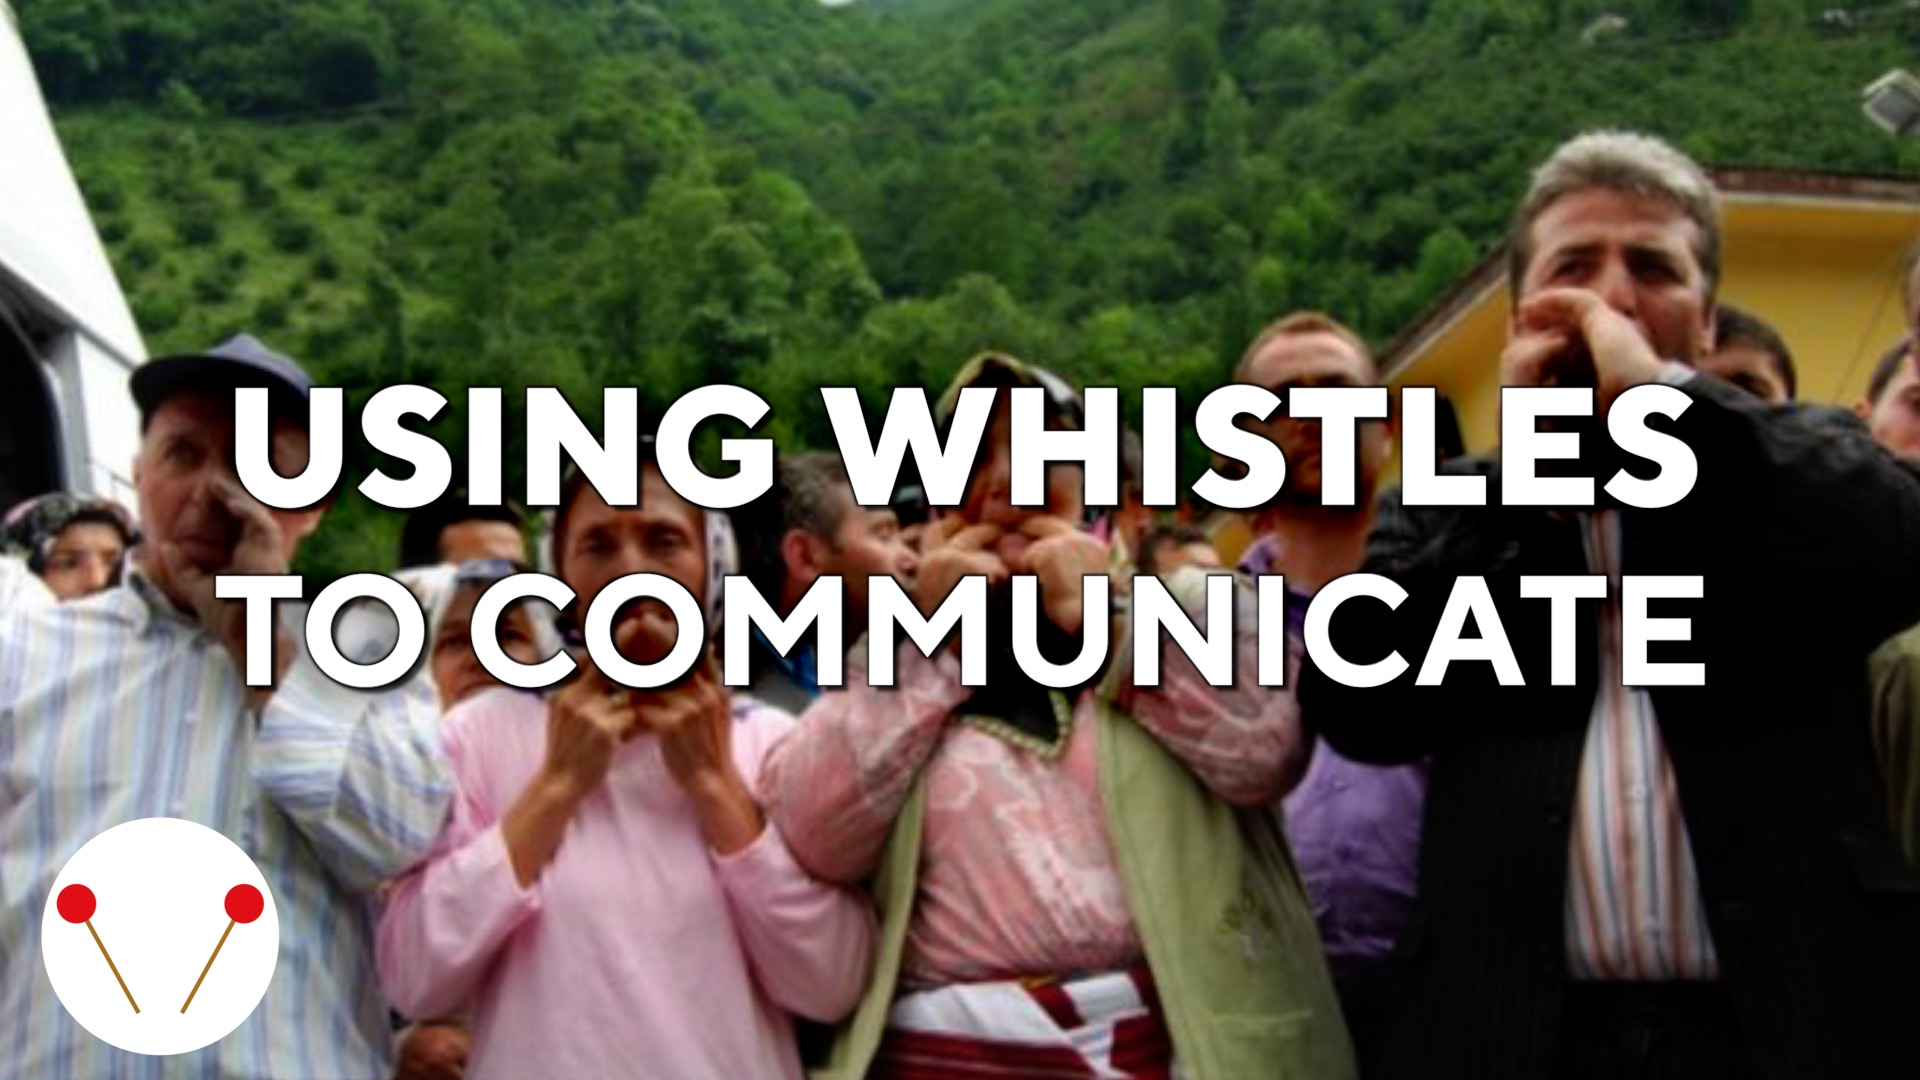 Using whistles, people talk like birds in this Turkish village